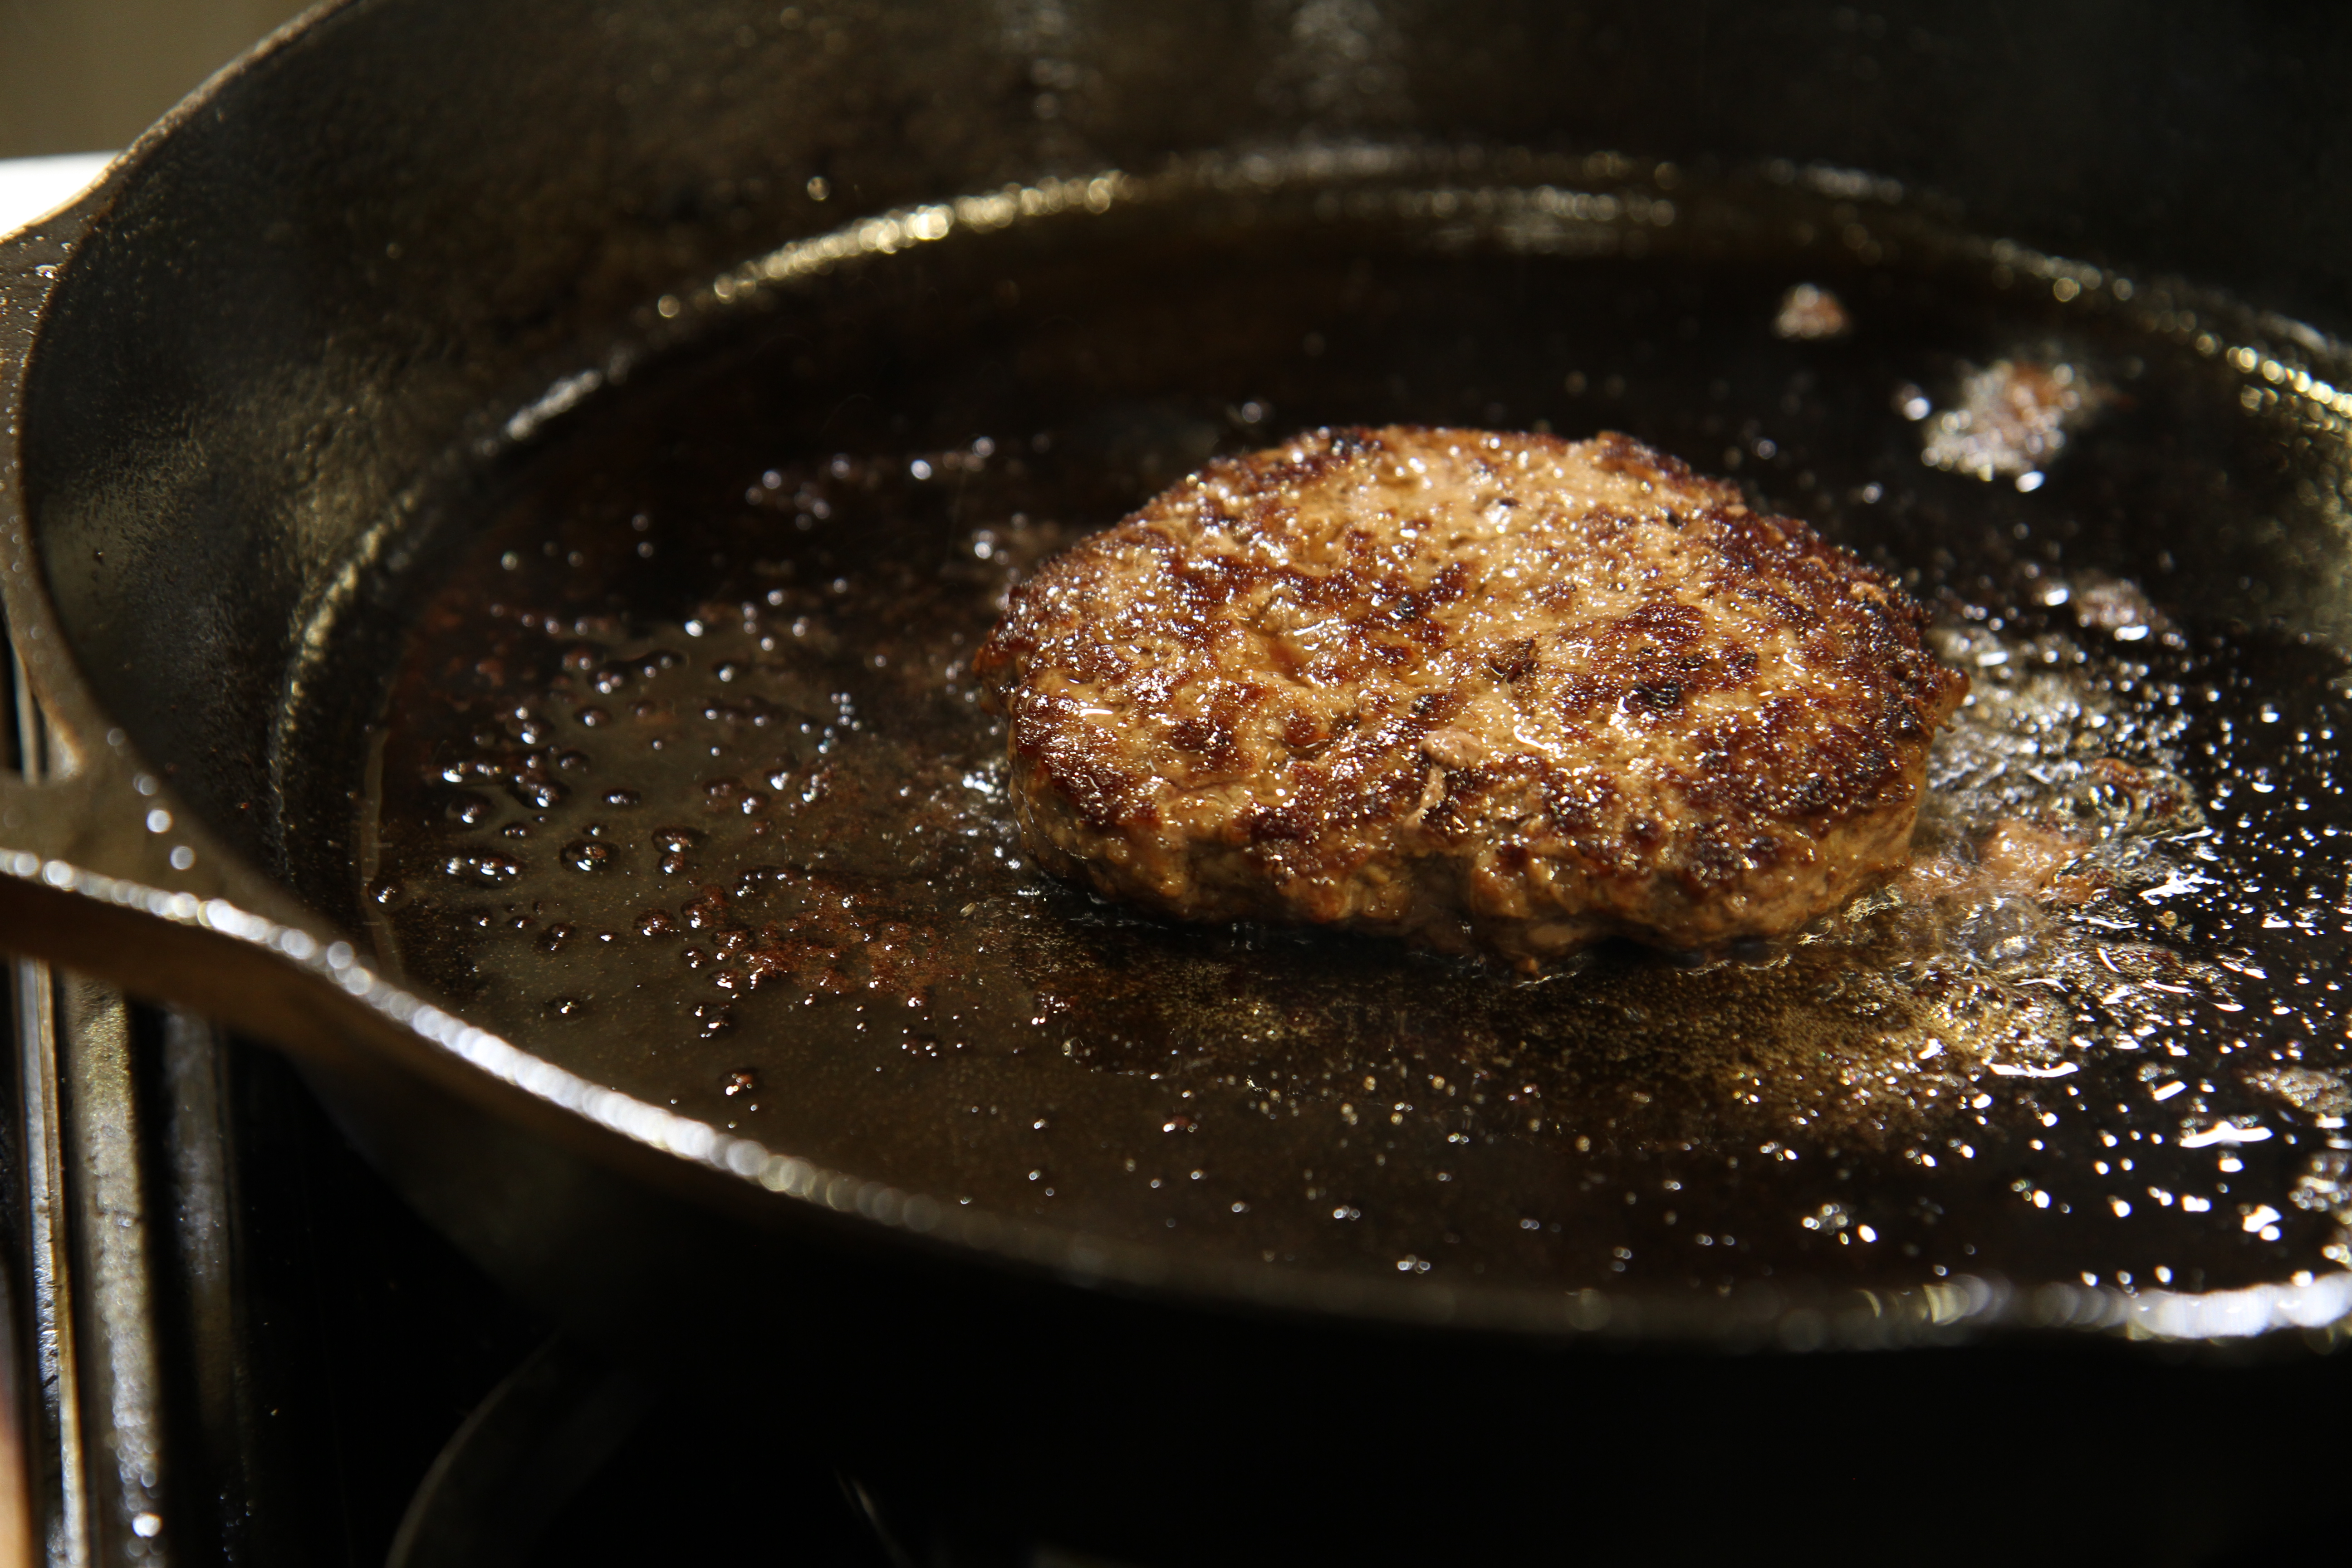 Cooing burger on cast iron pan